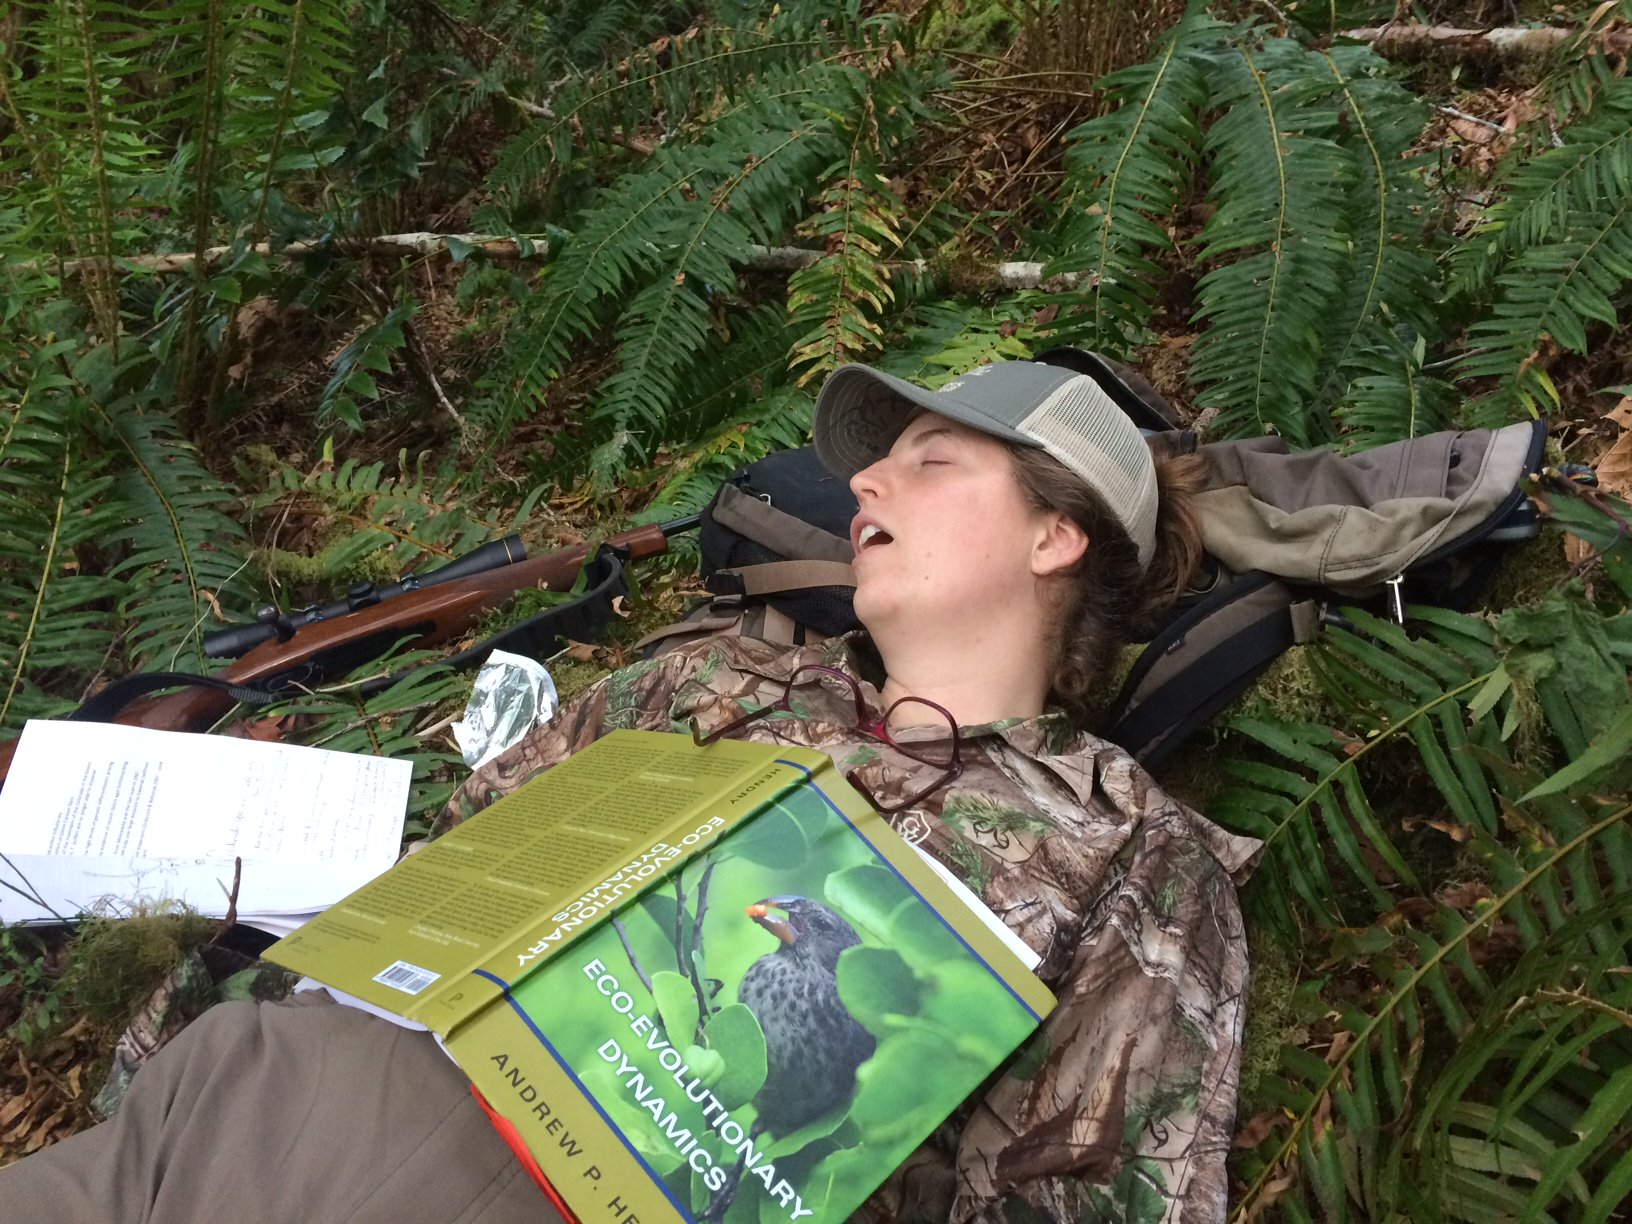 Didn't see any bears while hunting, but I got a chapter read!!  @EcoEvoEvoEco #PeopleWhoFellAsleepReadingMyBook @NovakLabOSU https://t.co/MVLtQpUpjB